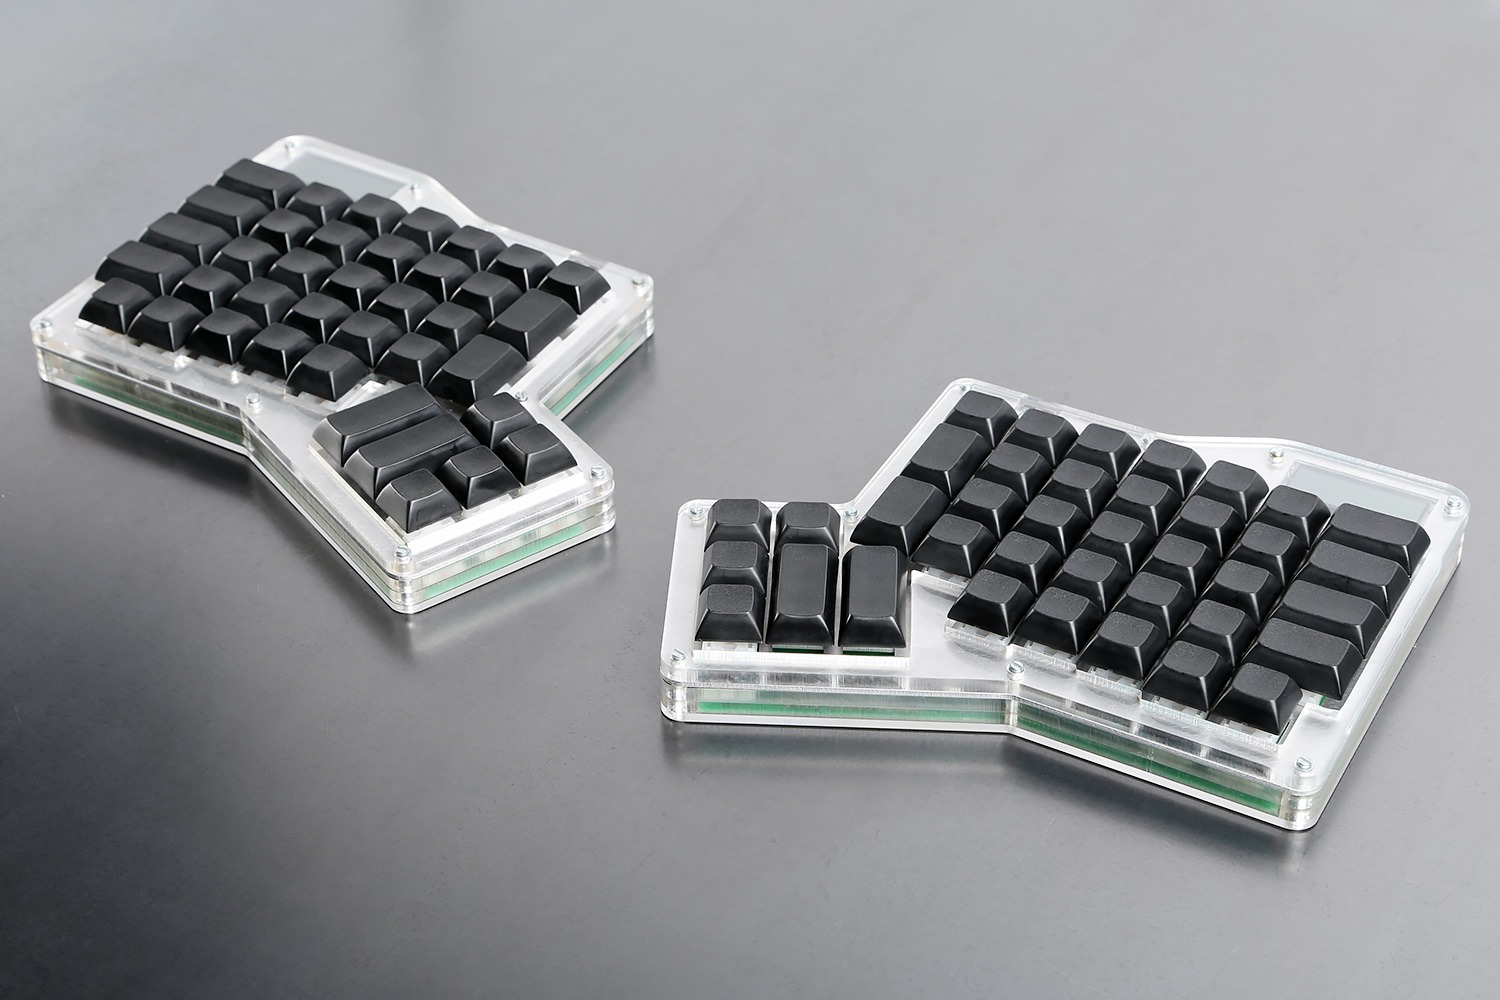 infinity ergodox mechanical keyboard